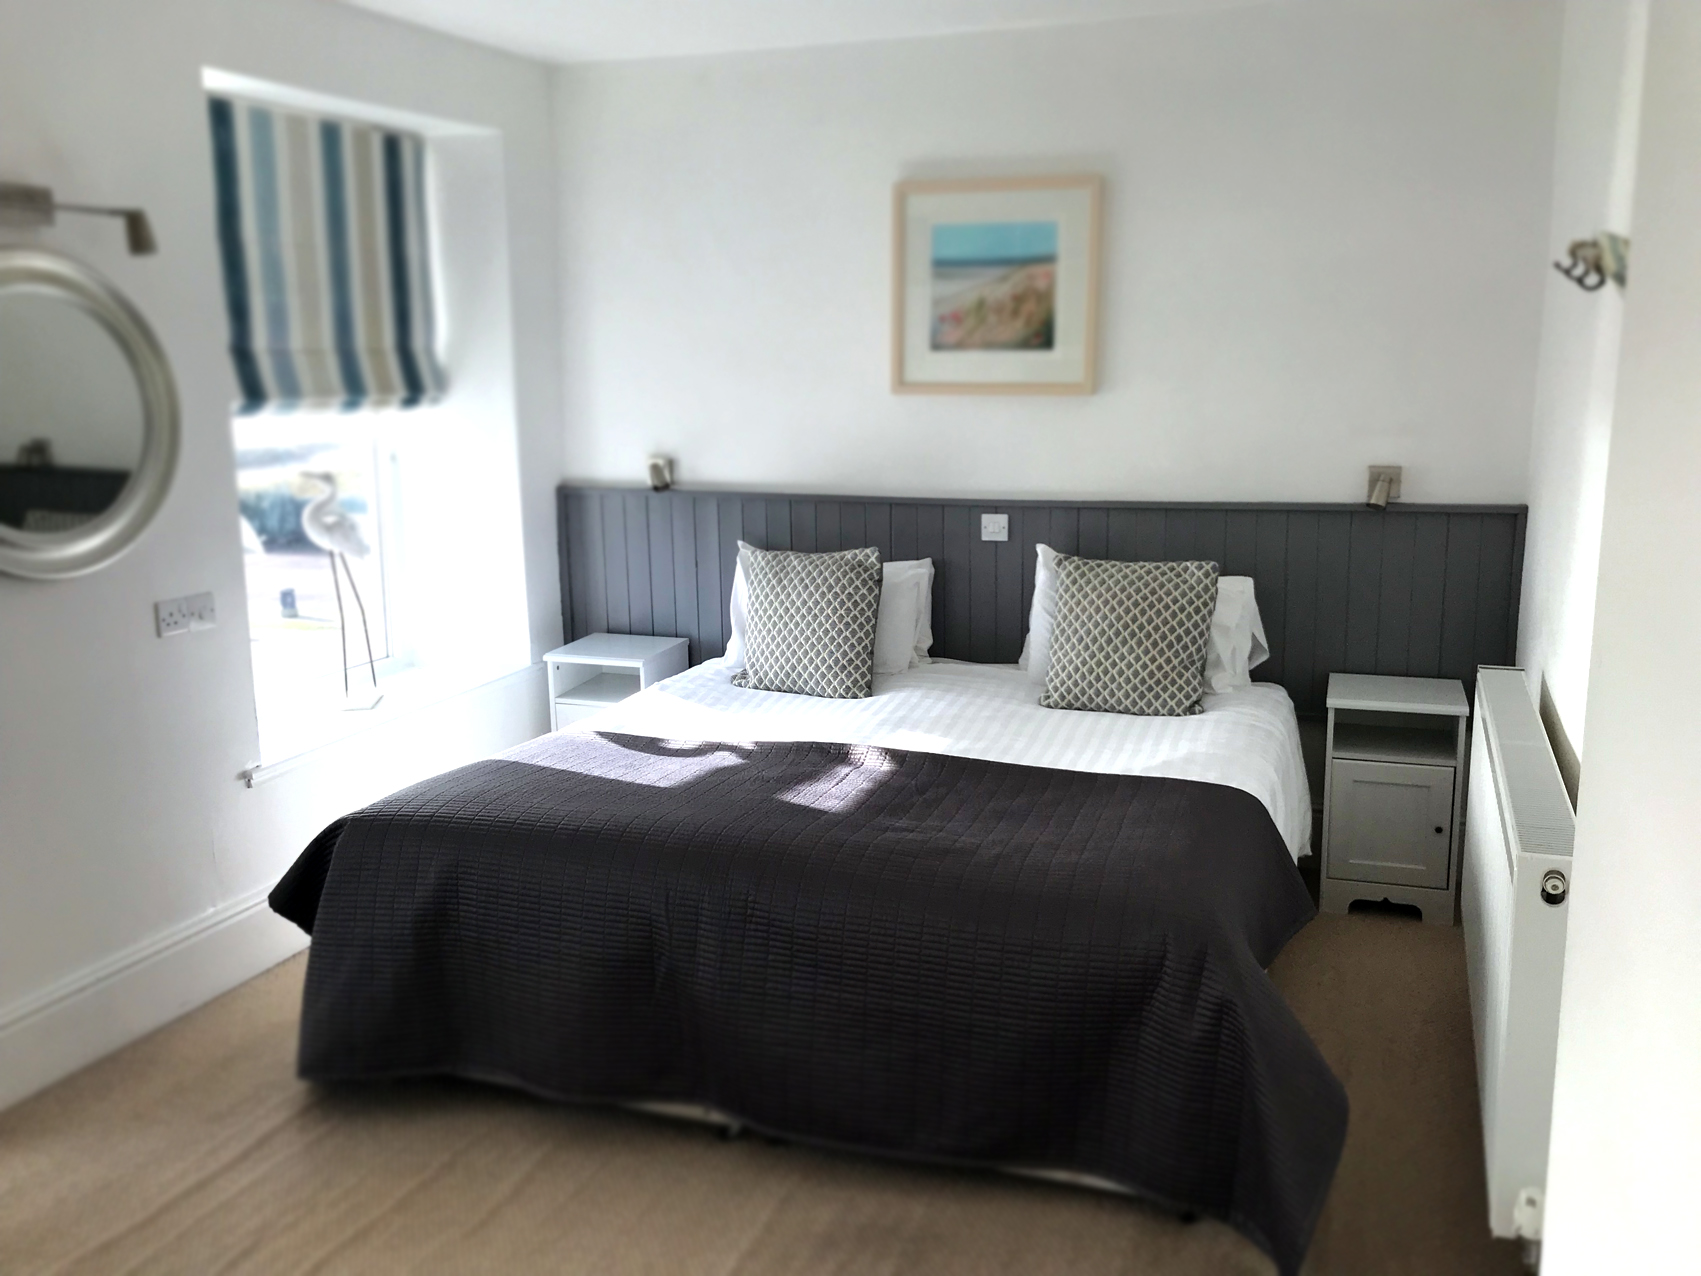 OUR ROOMS - All rooms are en-suite and 4 have uninterrupted sea views over the estuary, sandy beaches and the mountains beyond. Please note our rooms are non smoking.Check availability online and book direct here